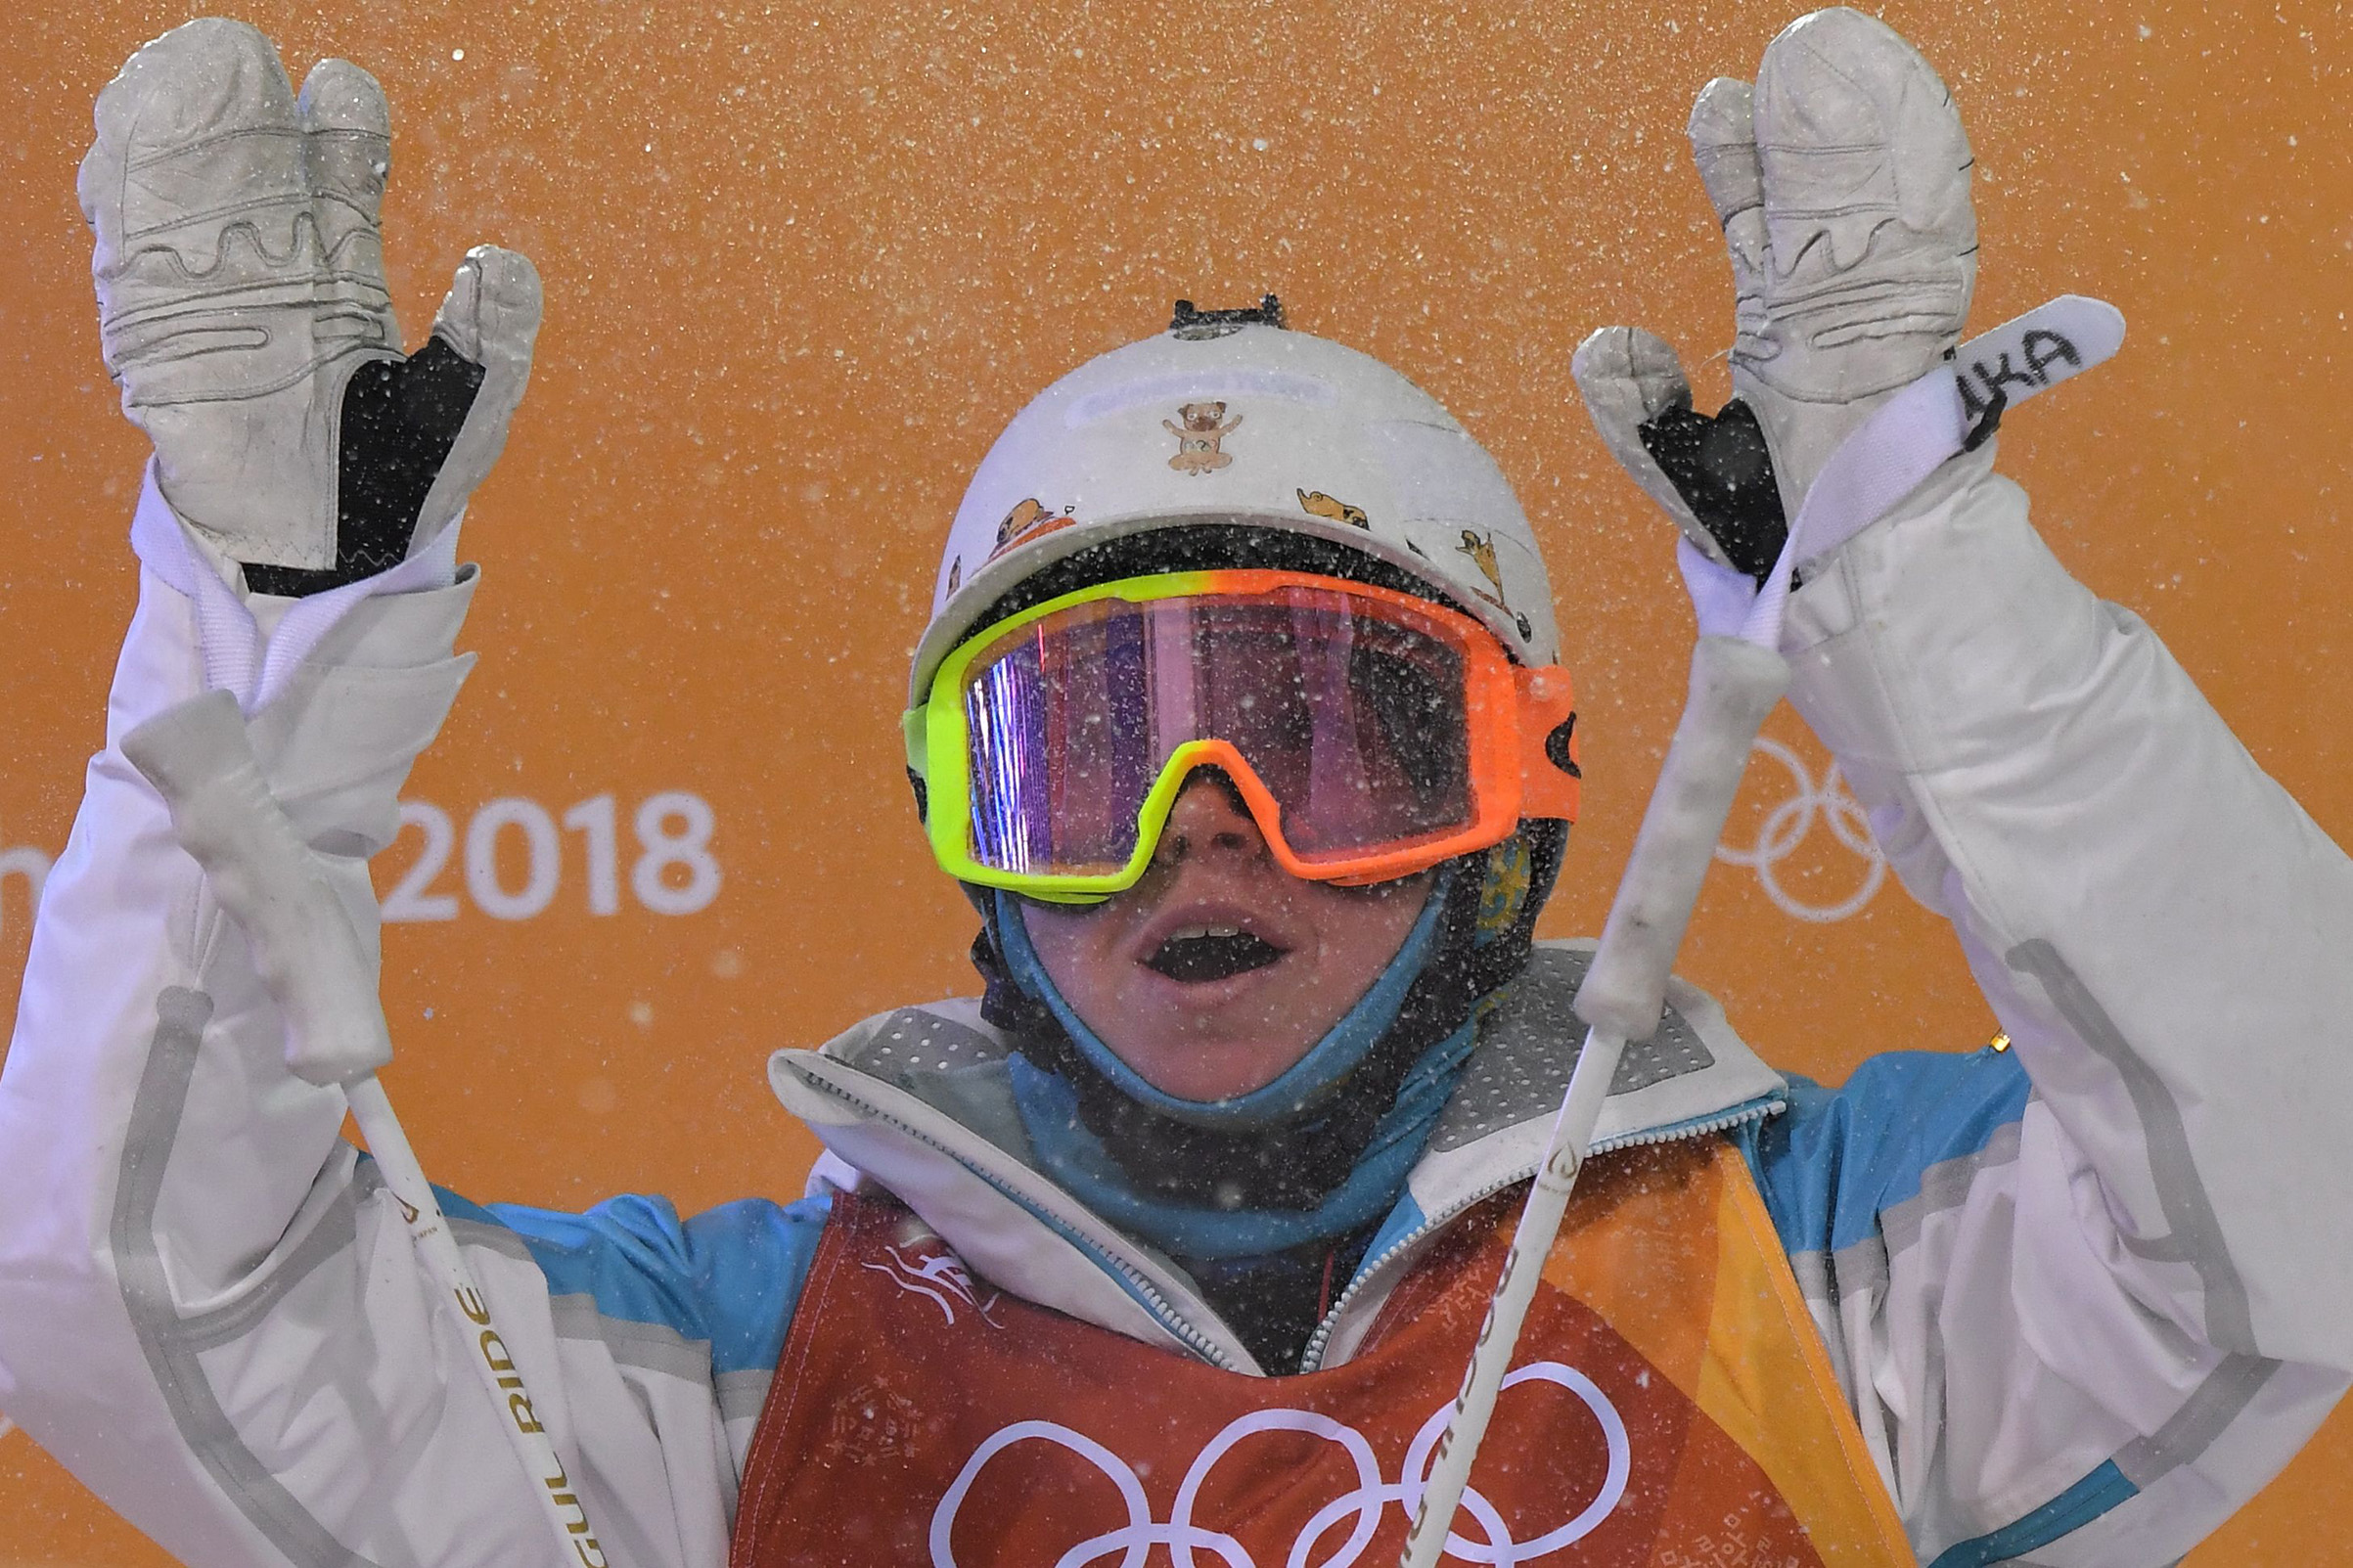 Kazakhstan's Yulia Galysheva reacts after the women's moguls final event during the Pyeongchang 2018 Winter Olympic Games on Feb. 11, 2018.